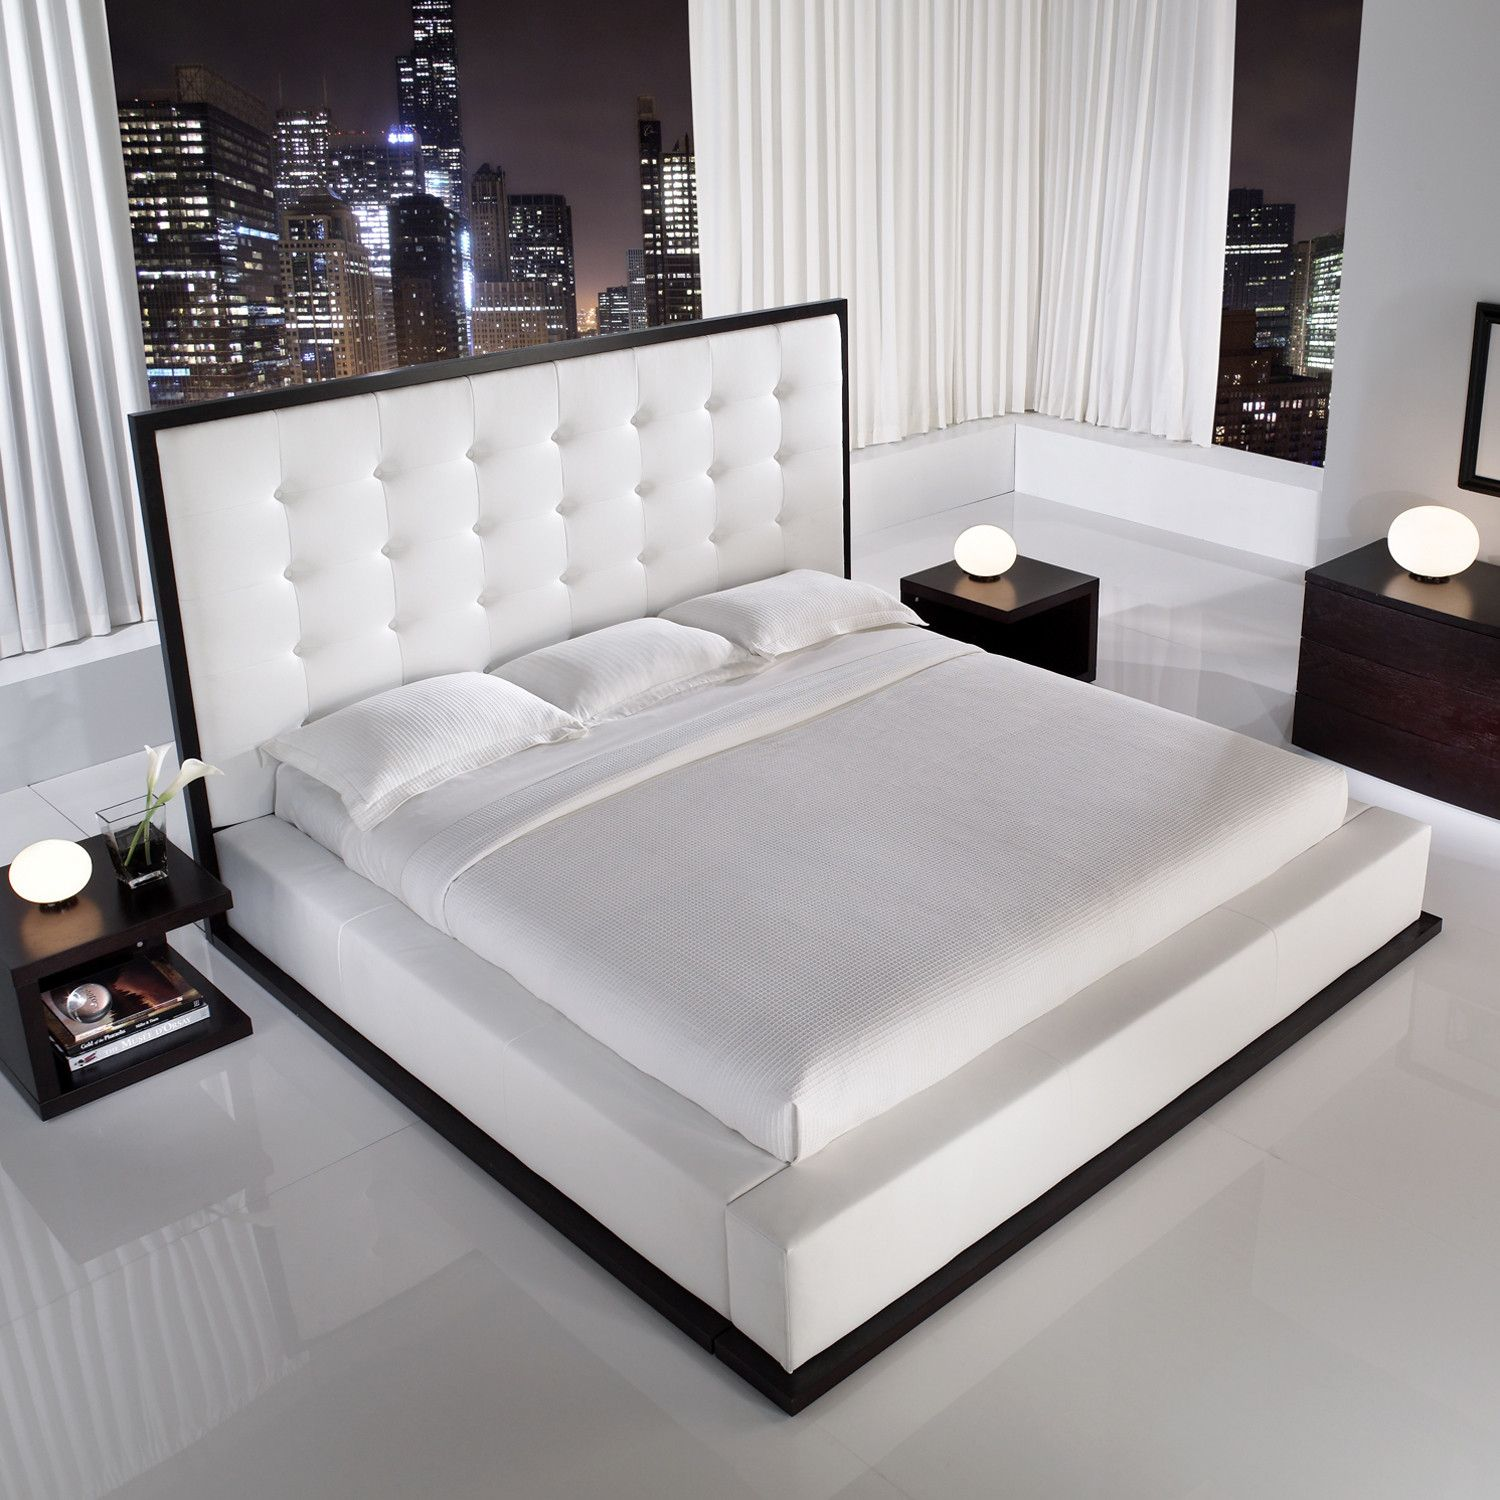 Ludlow Bed In Wenge White Leather Bed Furniture Design Bed Design Modern Bedroom Furniture